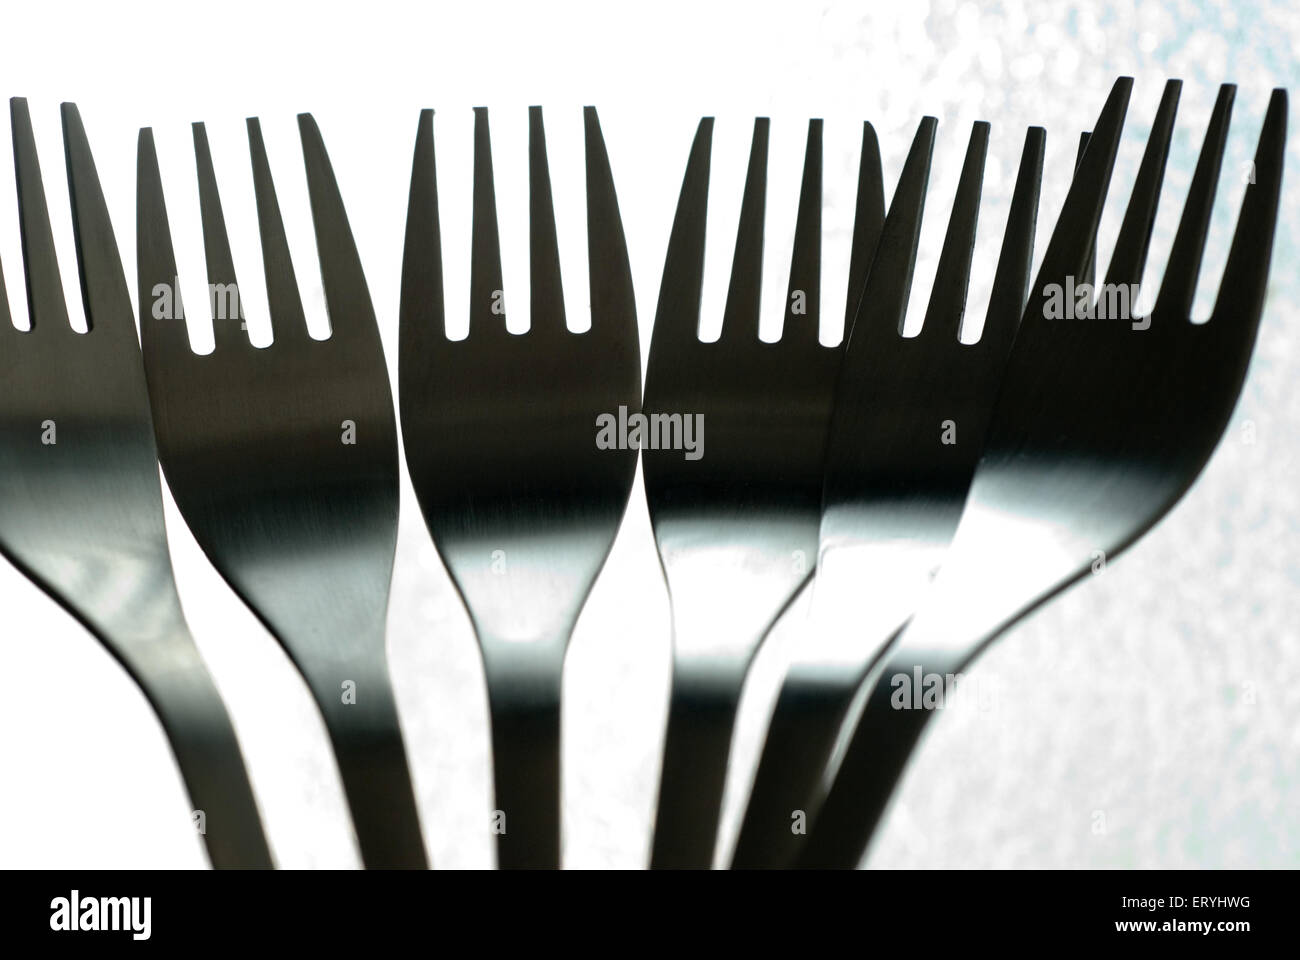 Stainless steel kitchen utensil forks on bright background - Stock Image